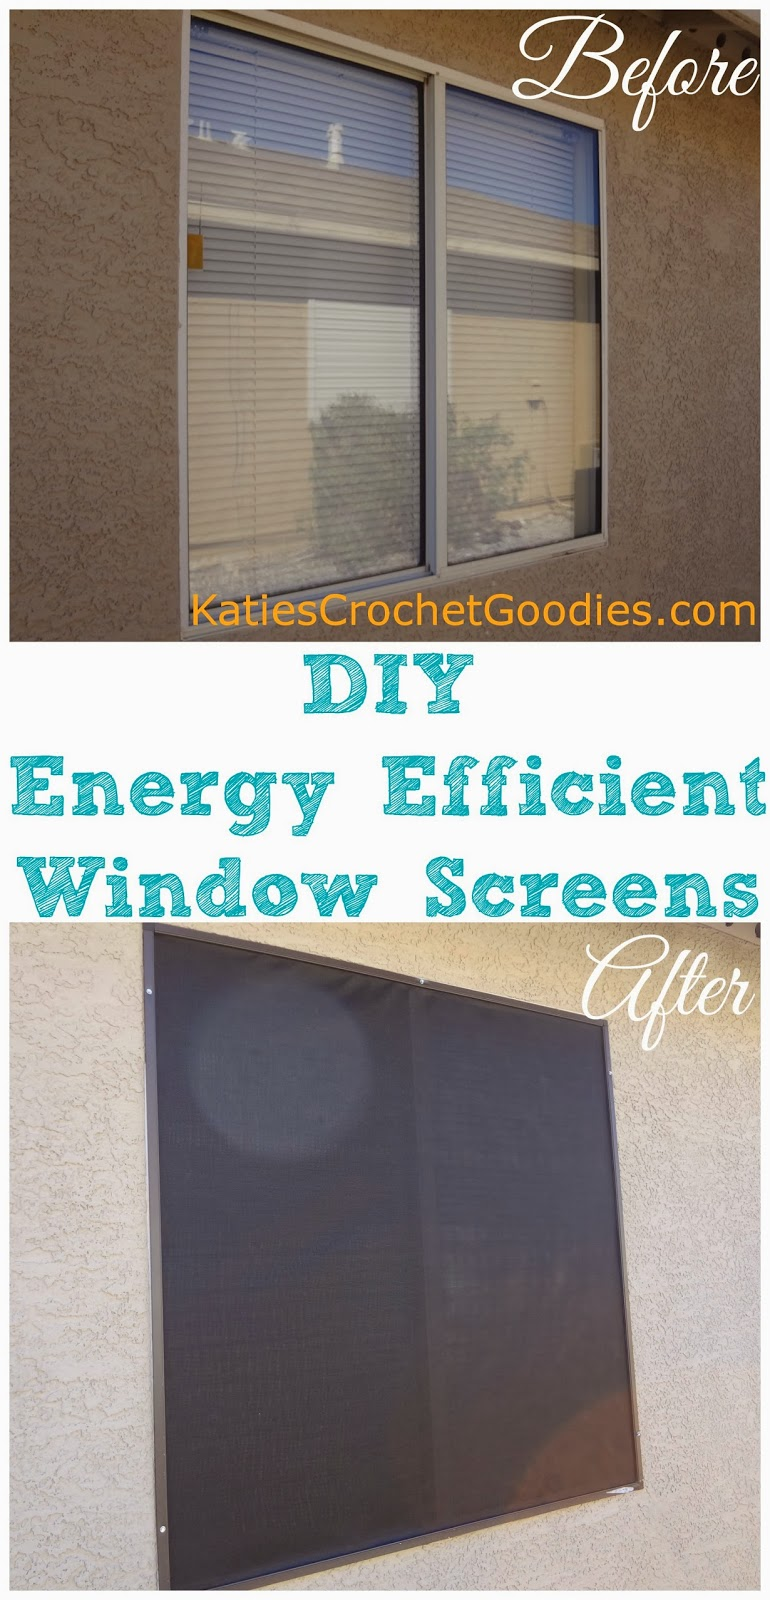 Diy energy efficient window screens katie 39 s crochet goodies for Energy windows